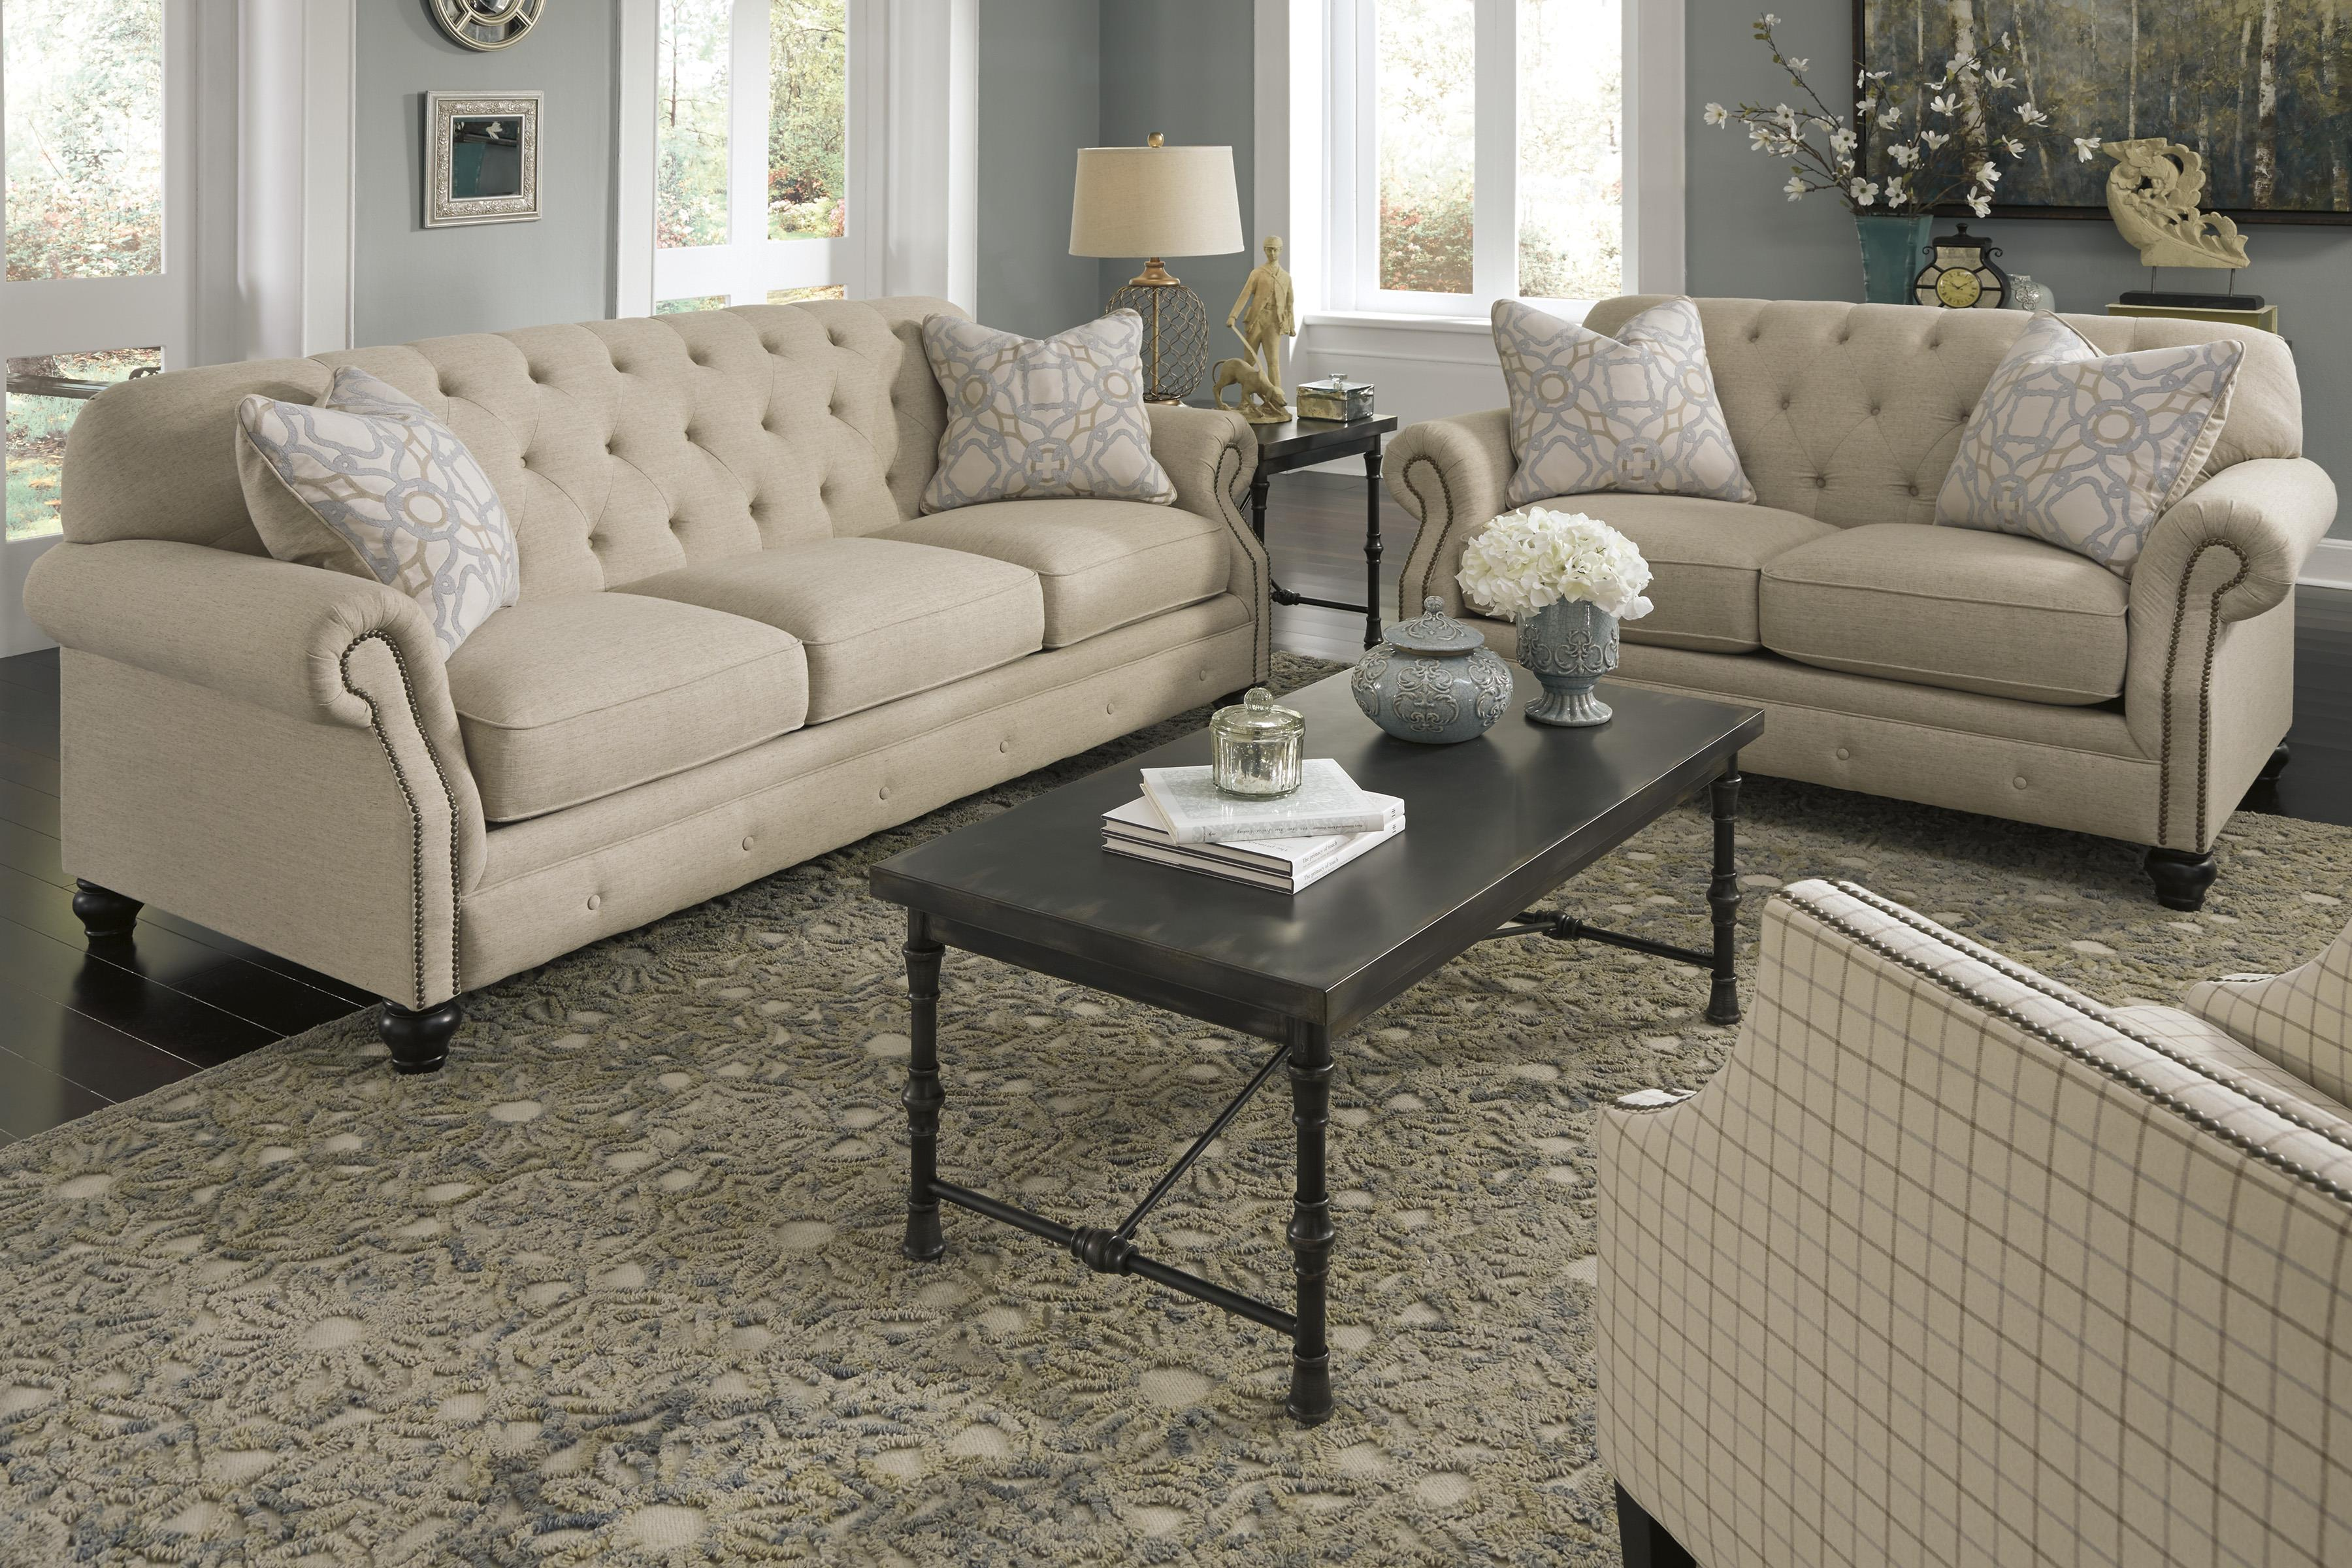 Traditional Loveseat With Tufted Back And Feather Blend Accent Pillows By Signature Design By